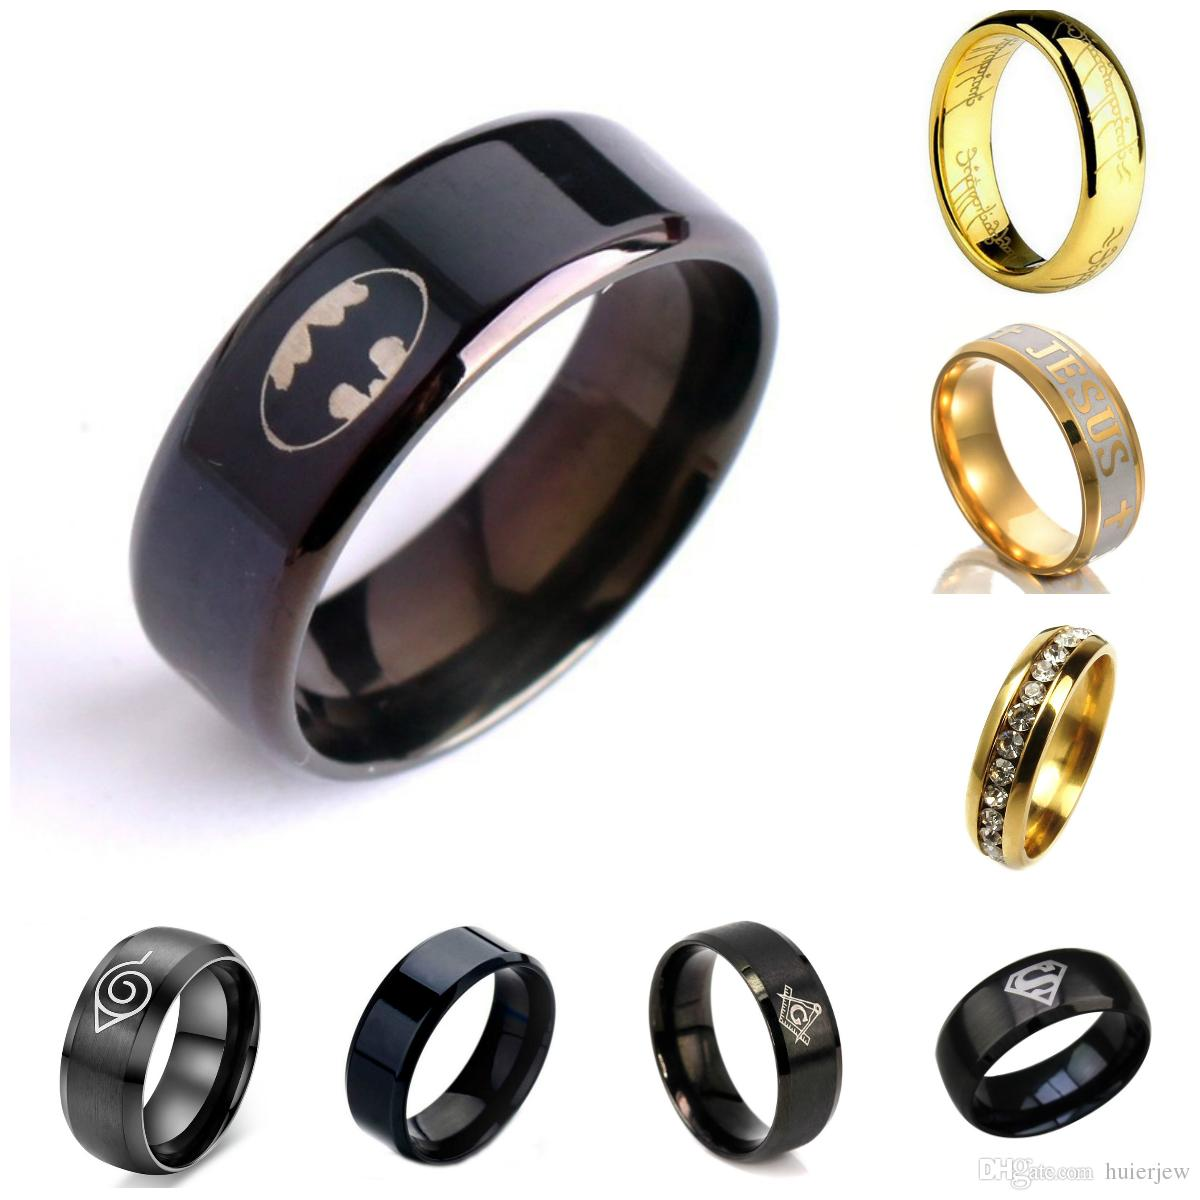 with size download rings you that steel tablet ideas ten wedding band your great stainless ring sdp handphone friends mens share can black by